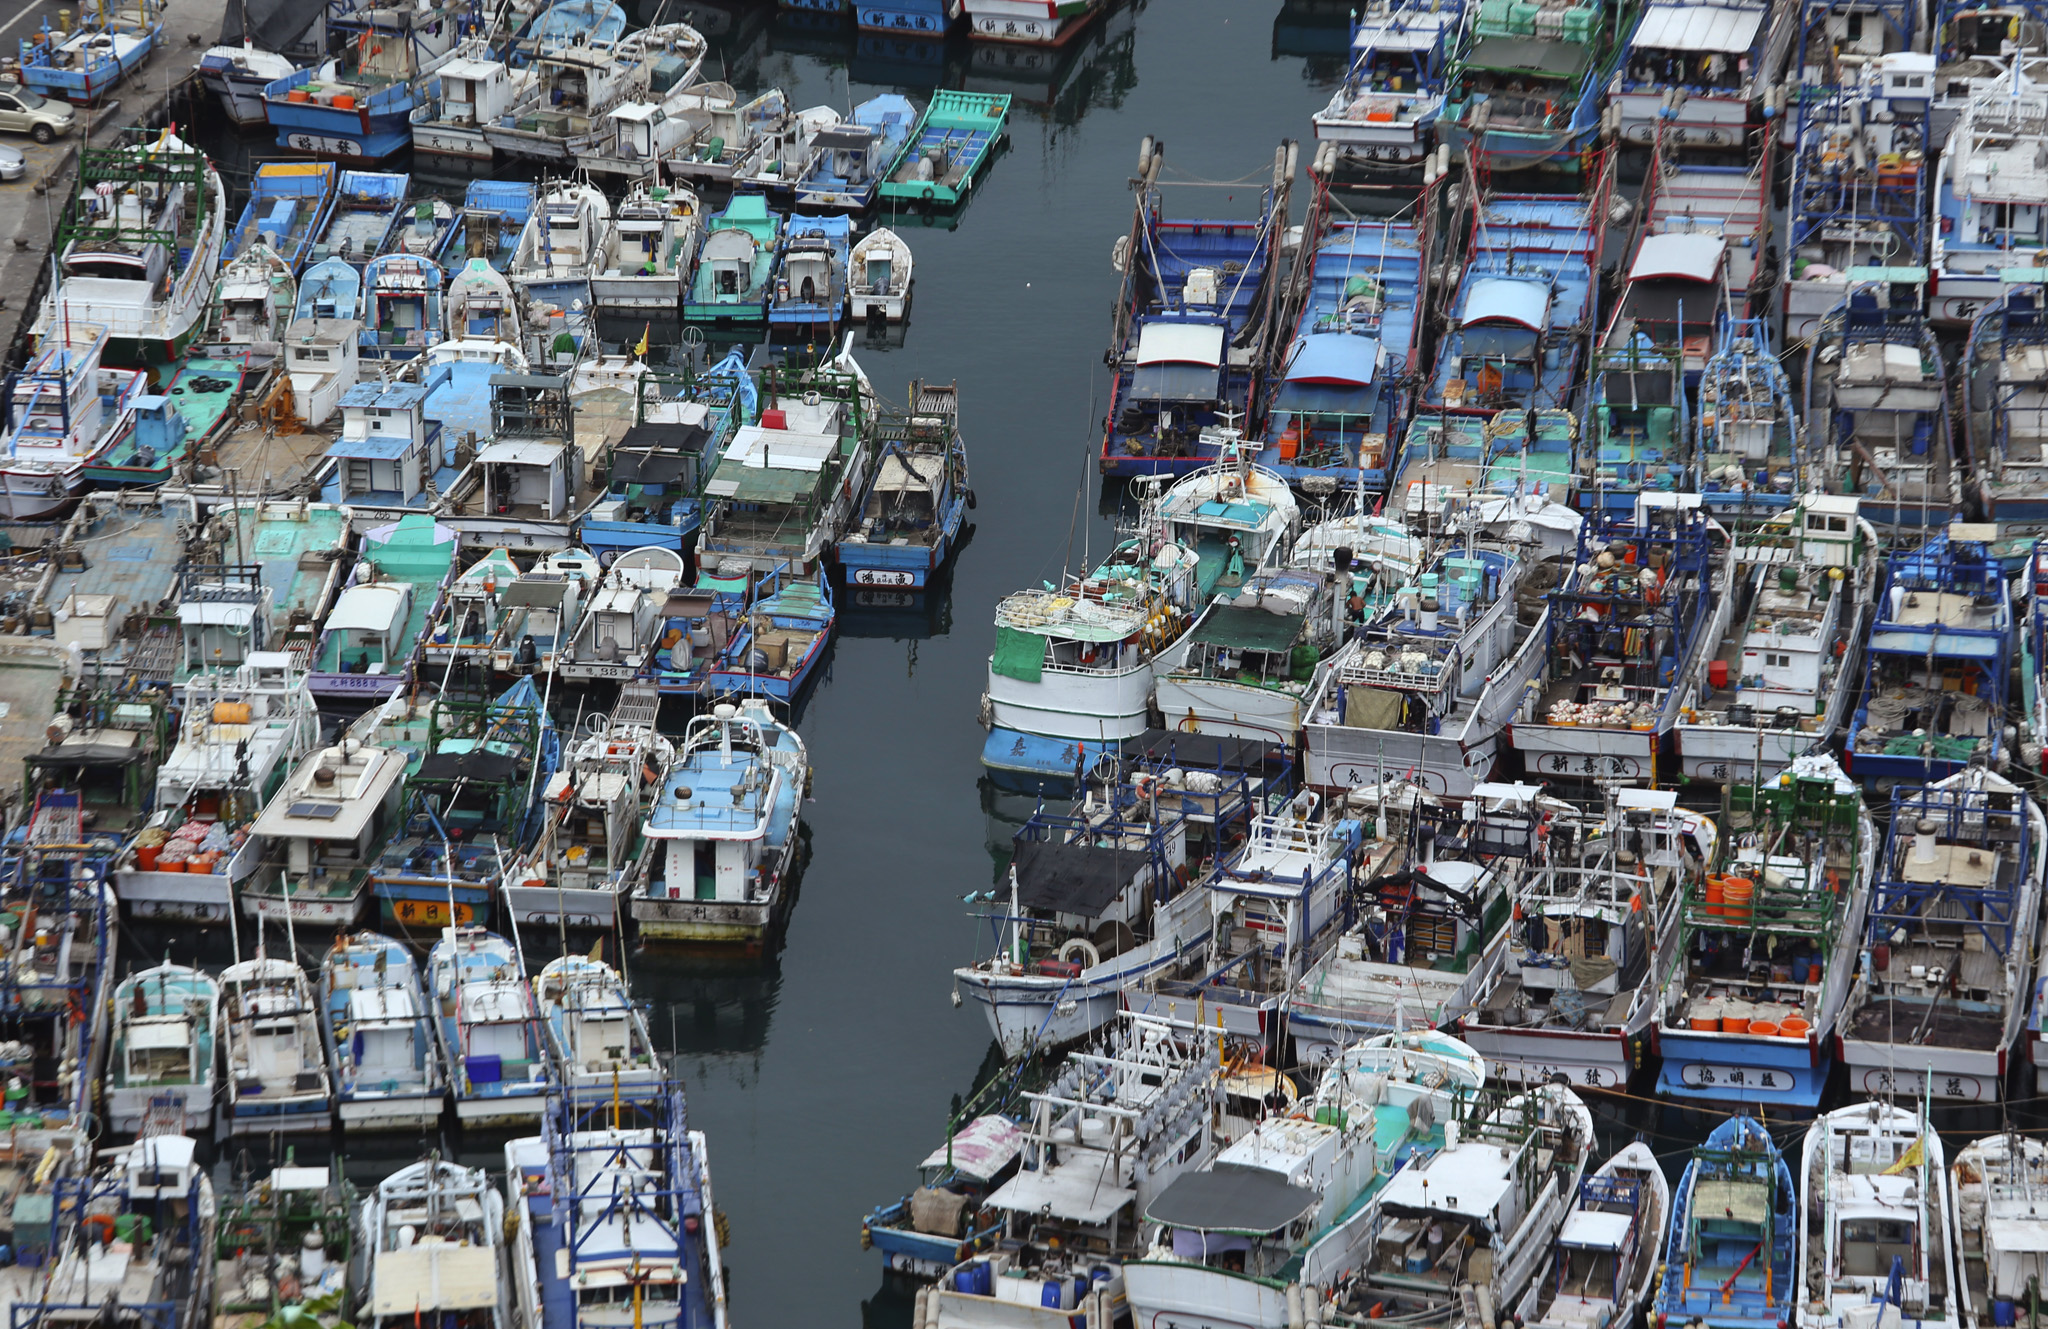 Fishing boats are secured in a port in Yilan County, Taiwan, as Typhoon Soudelor approaches.